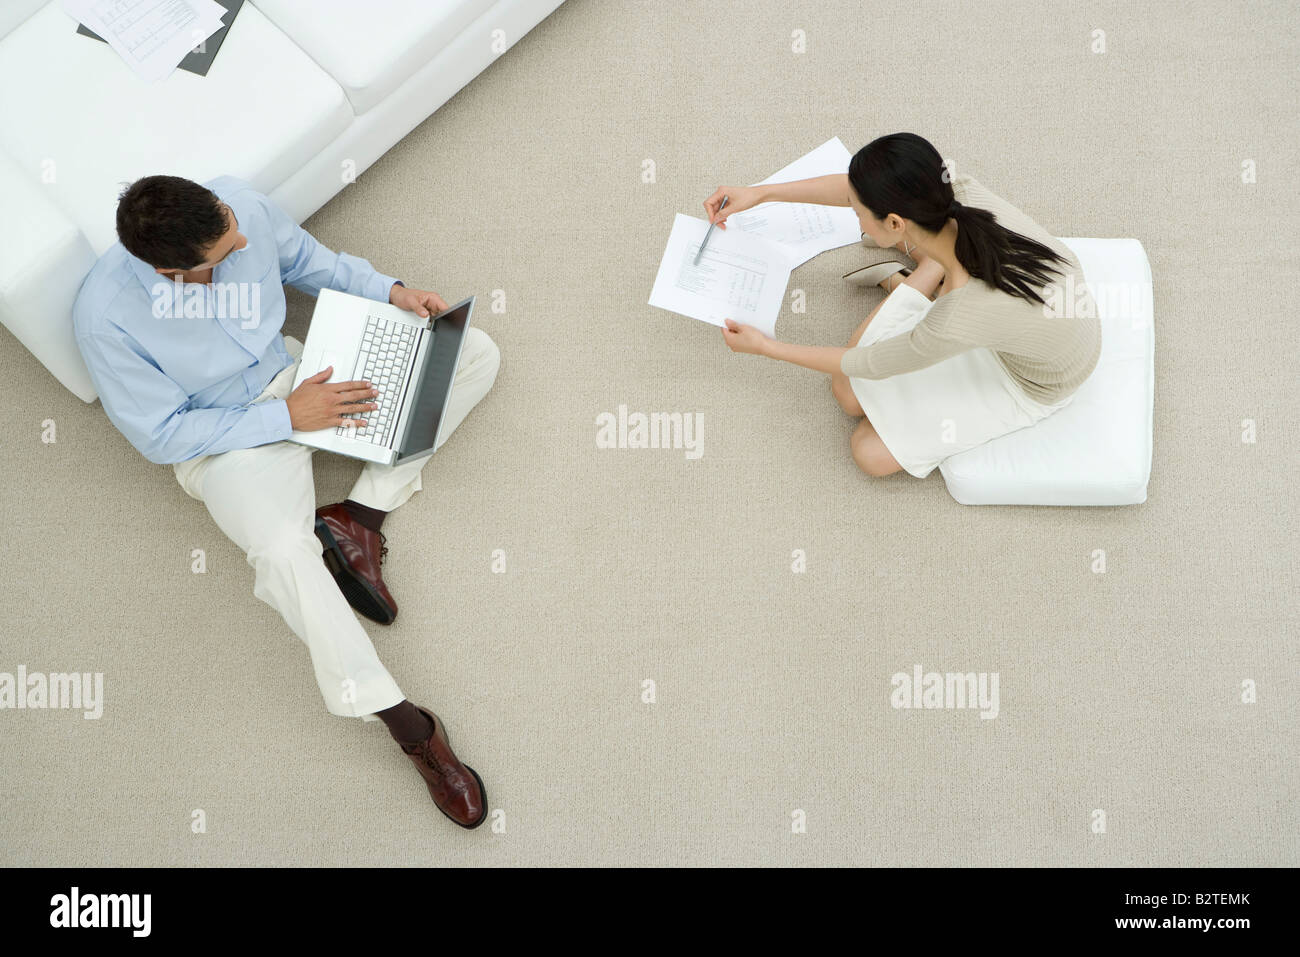 Two colleagues sitting on the ground, discussing document, overhead view Stock Photo